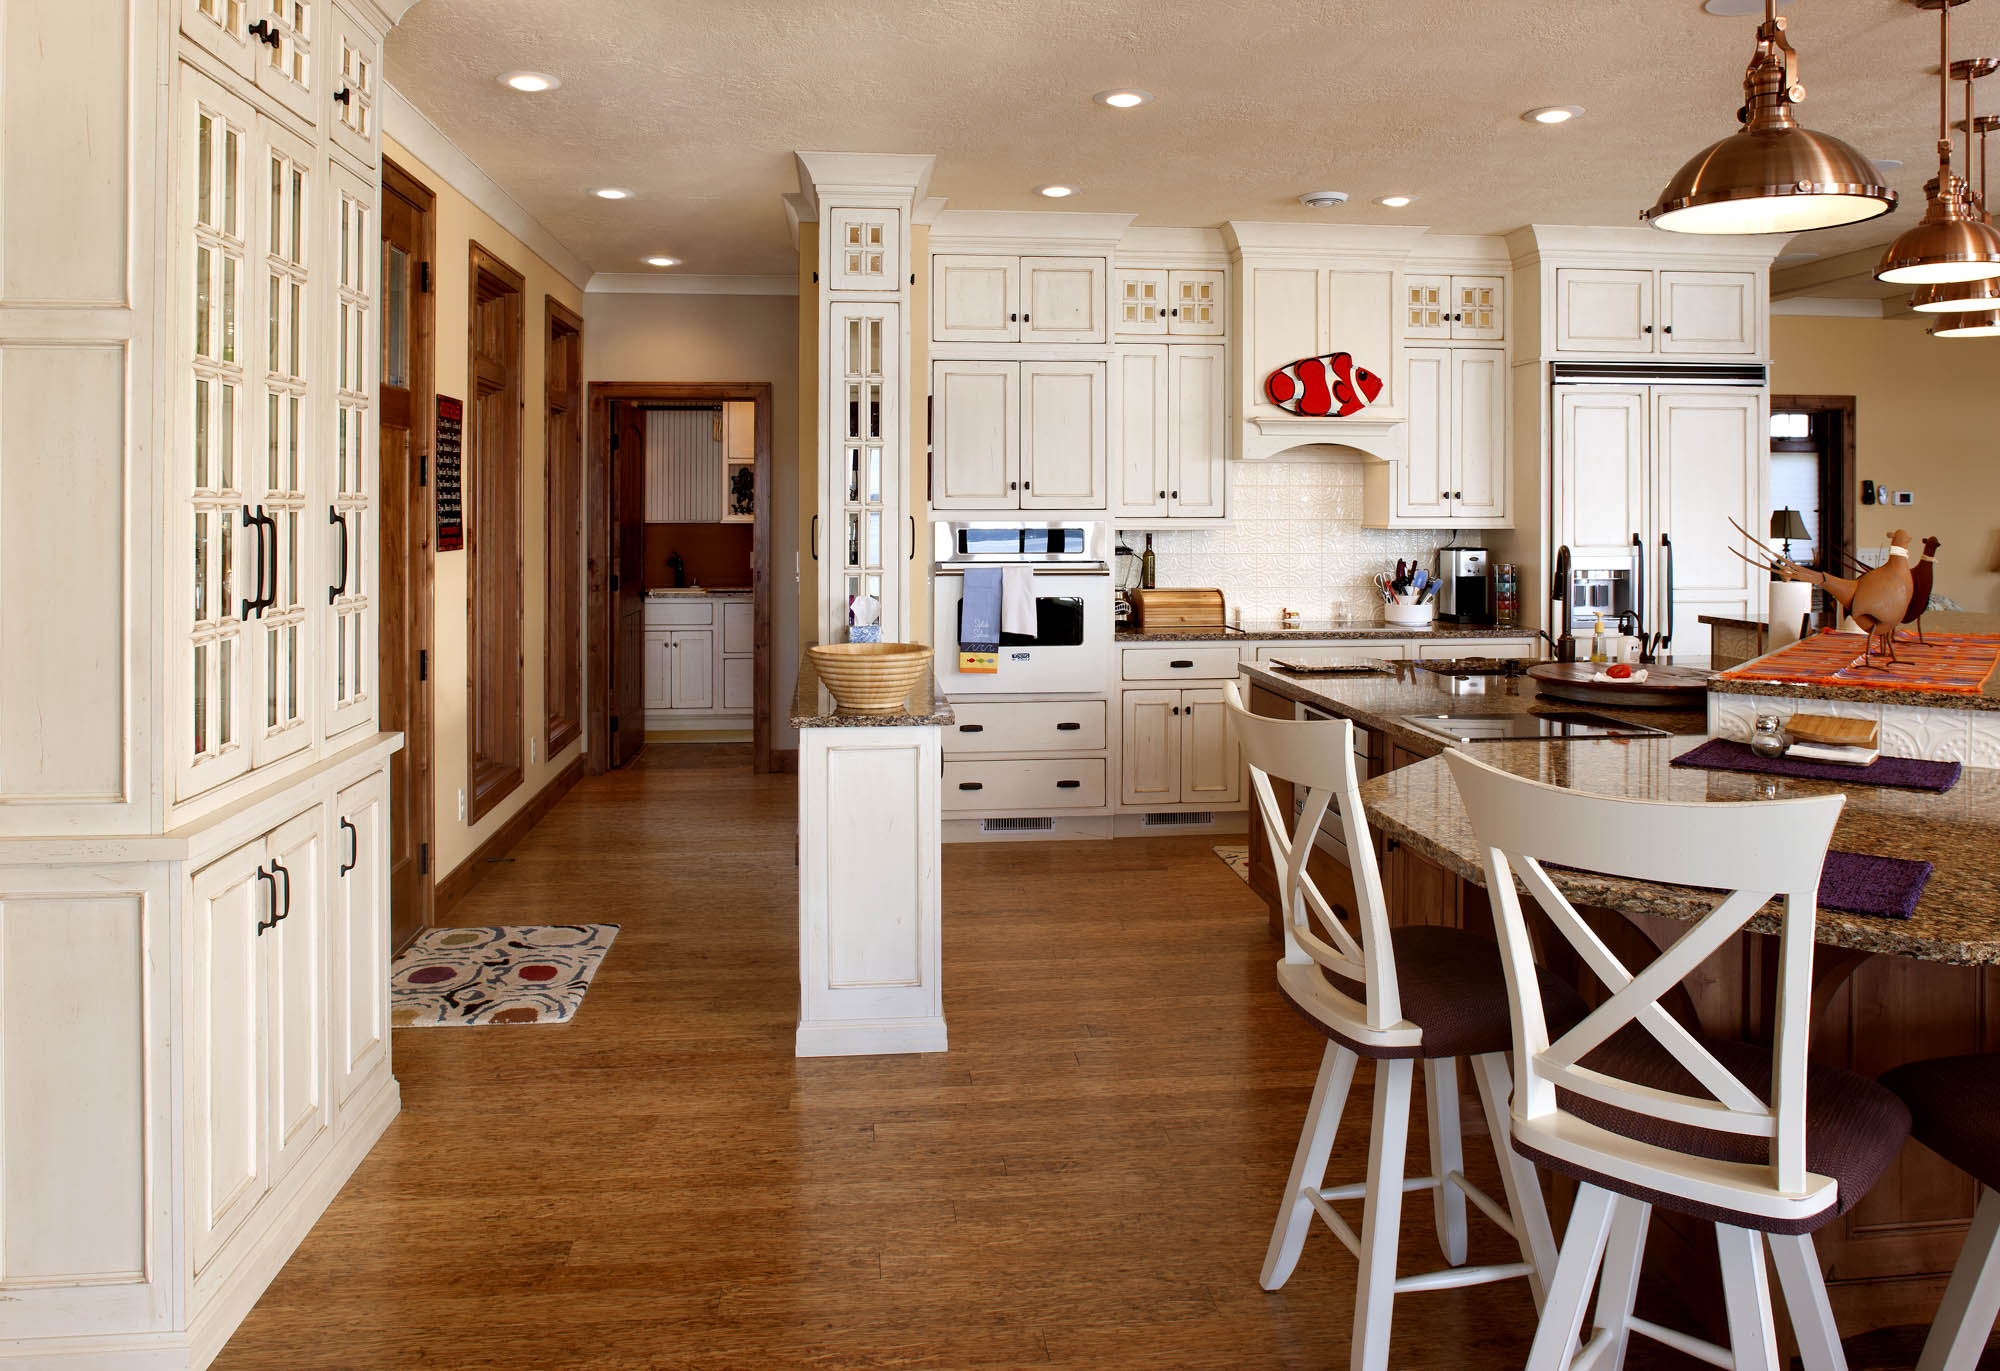 Painted kitchen cabinets in Vintage Soft Cream by Showplace Cabinetry - view 2